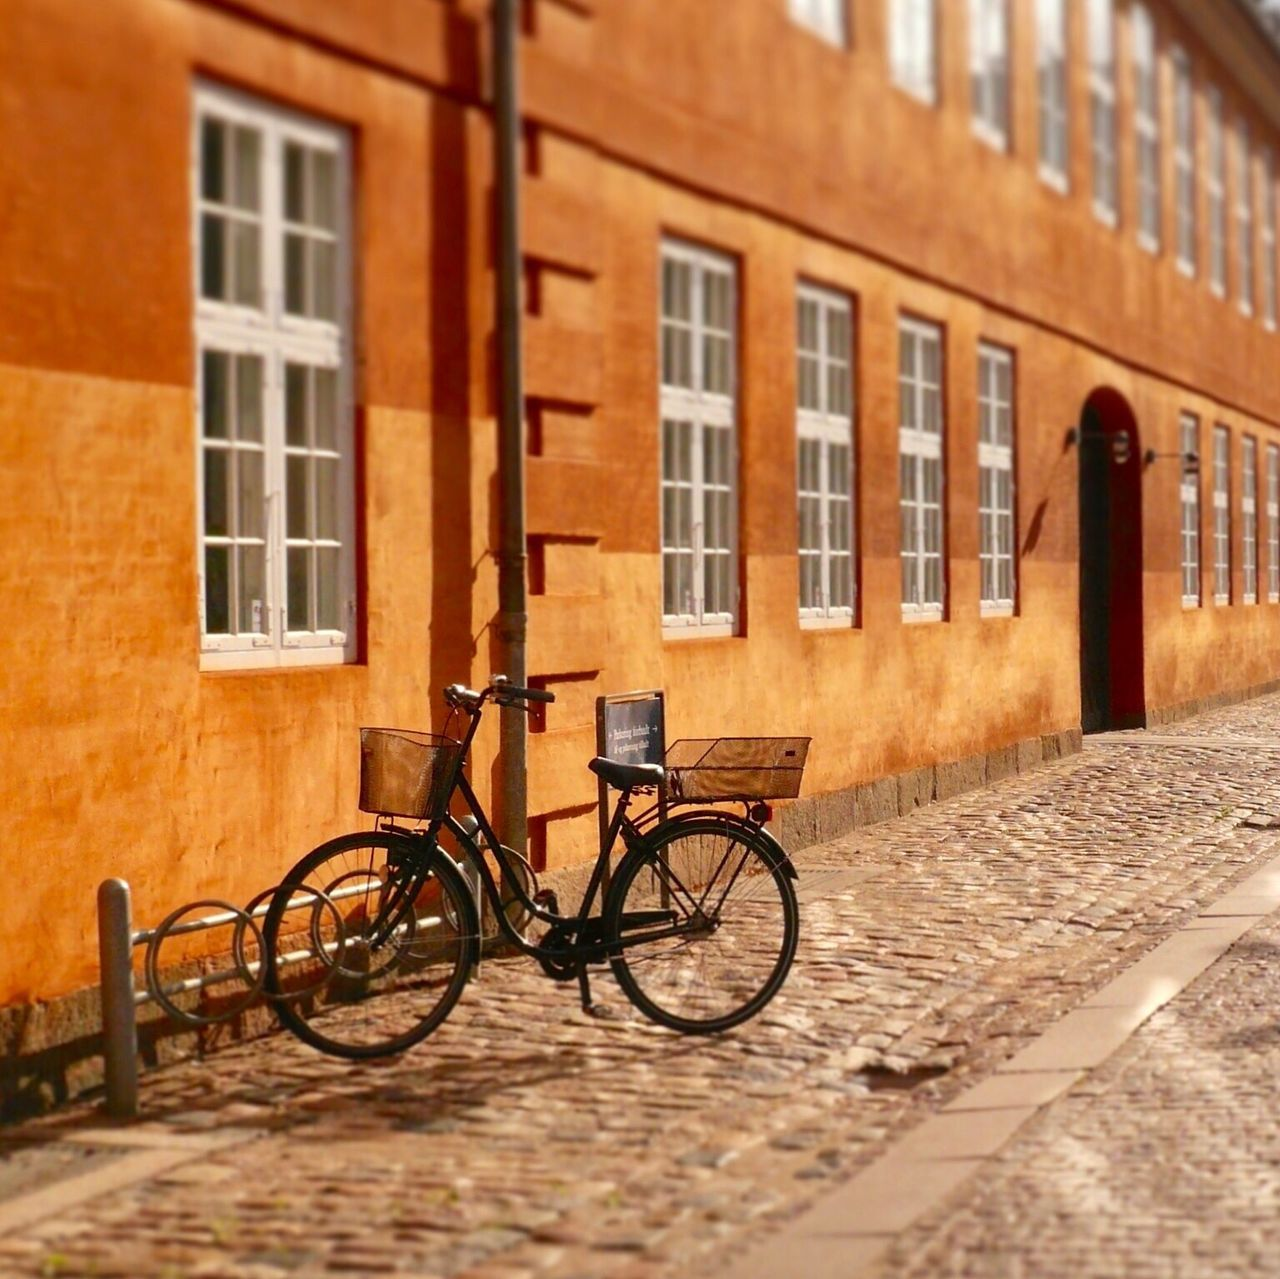 Danmark Kopenhagen Old Buildings Old-fashioned Bicycle Building Exterior Architecture Built Structure City No People Day City Life The Street Photographer - 2017 EyeEm Awards